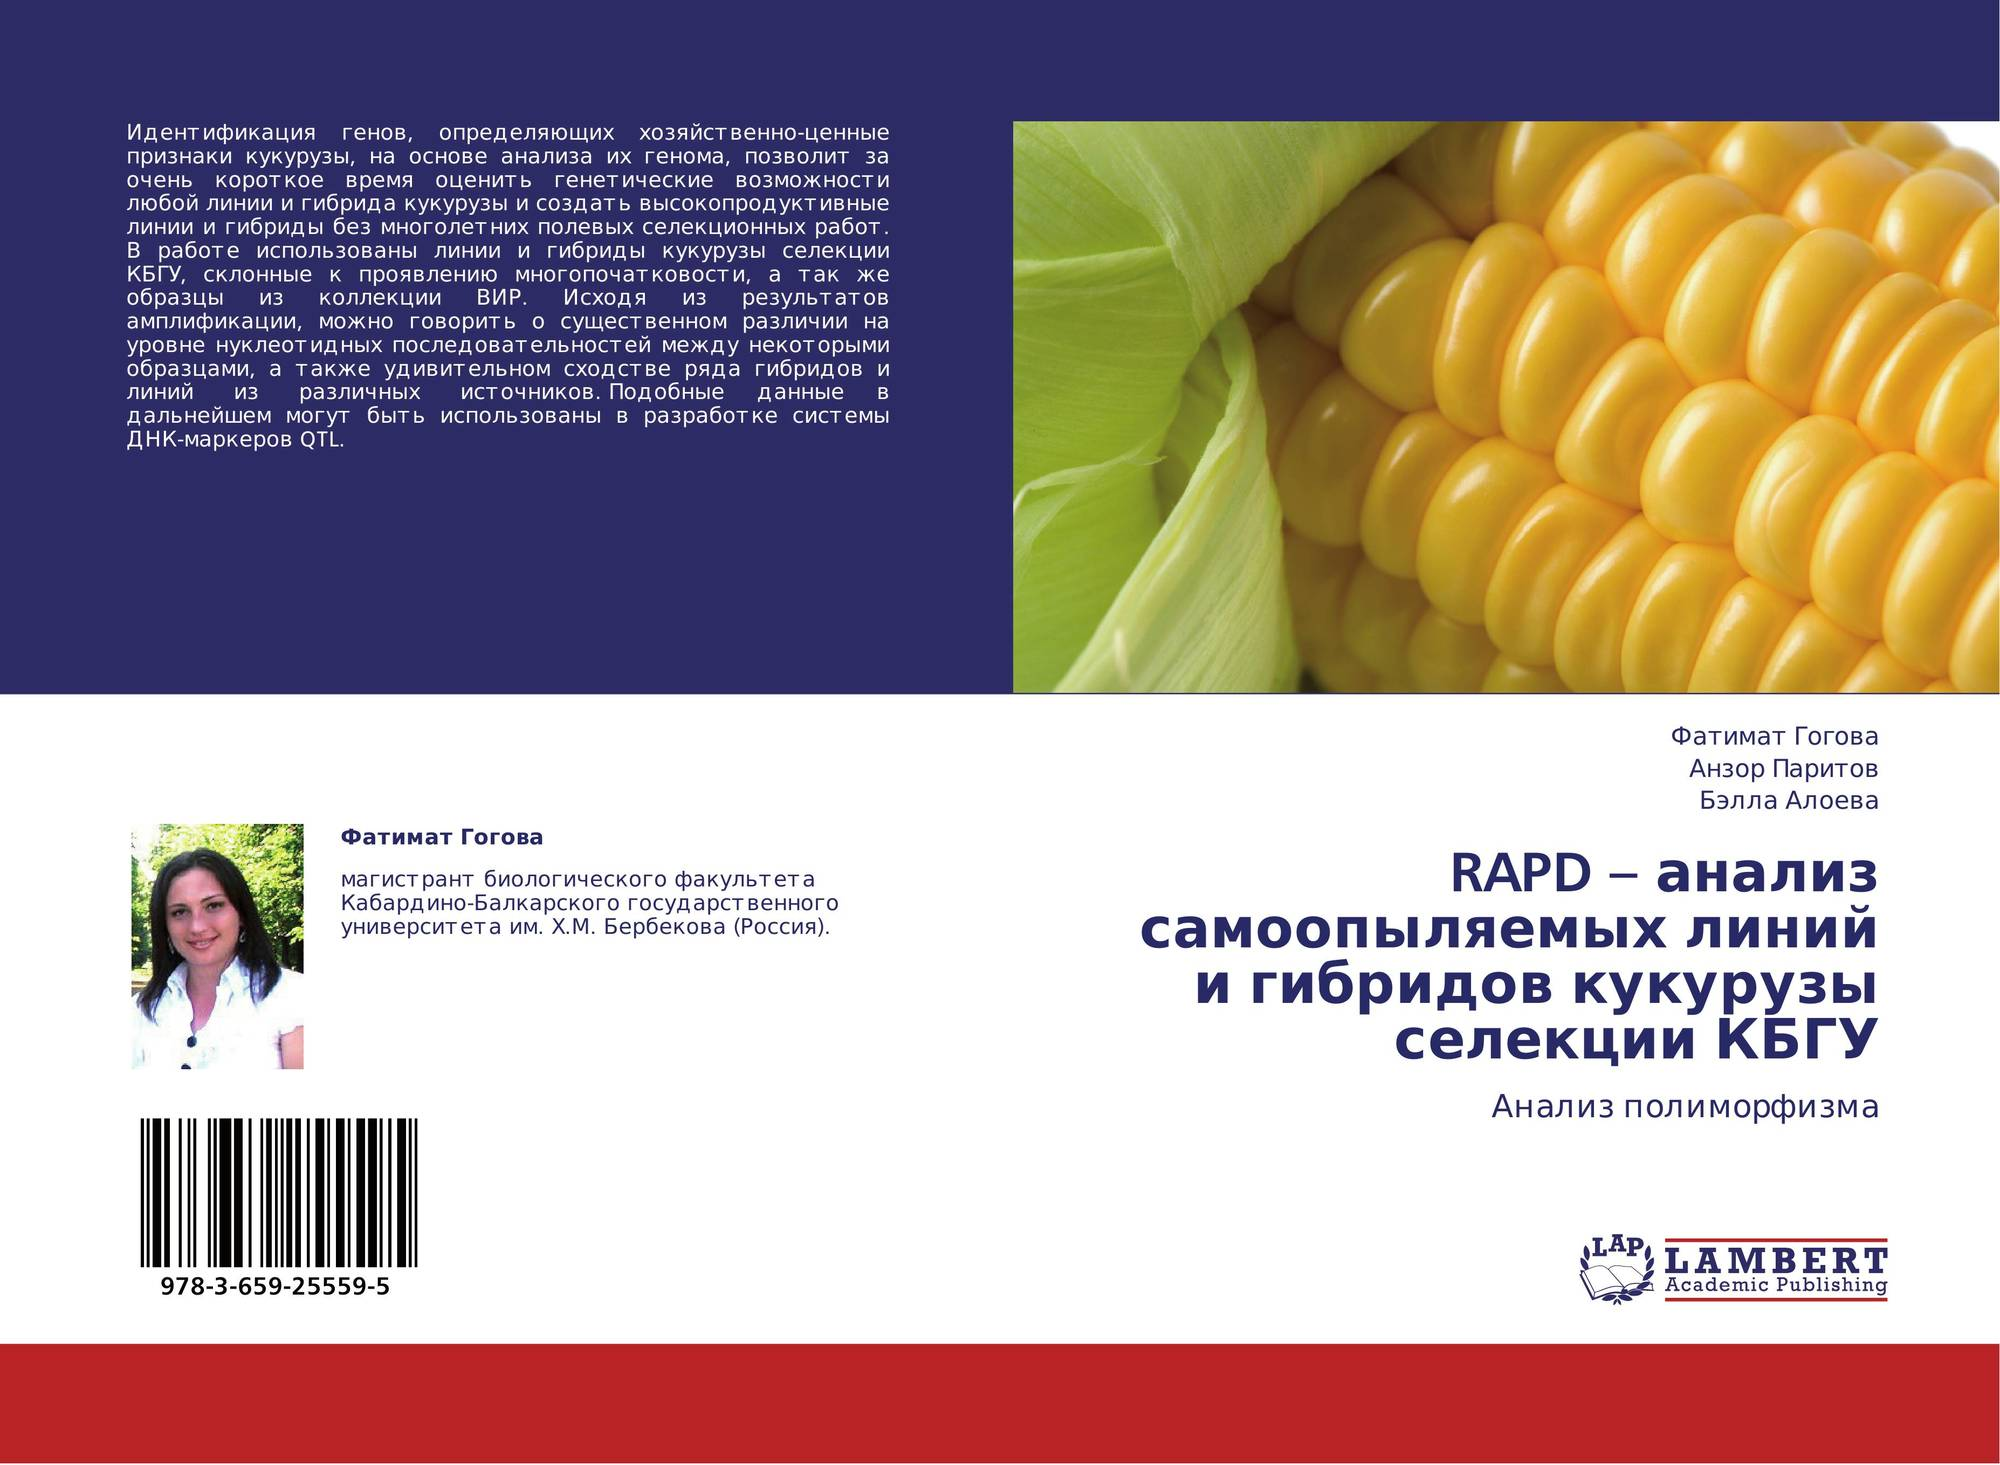 thesis on rapd analysis Genetic variability and biotechnological studies for the conservation and improvement genetic variability and biotechnological studies for the rapd analysis of.